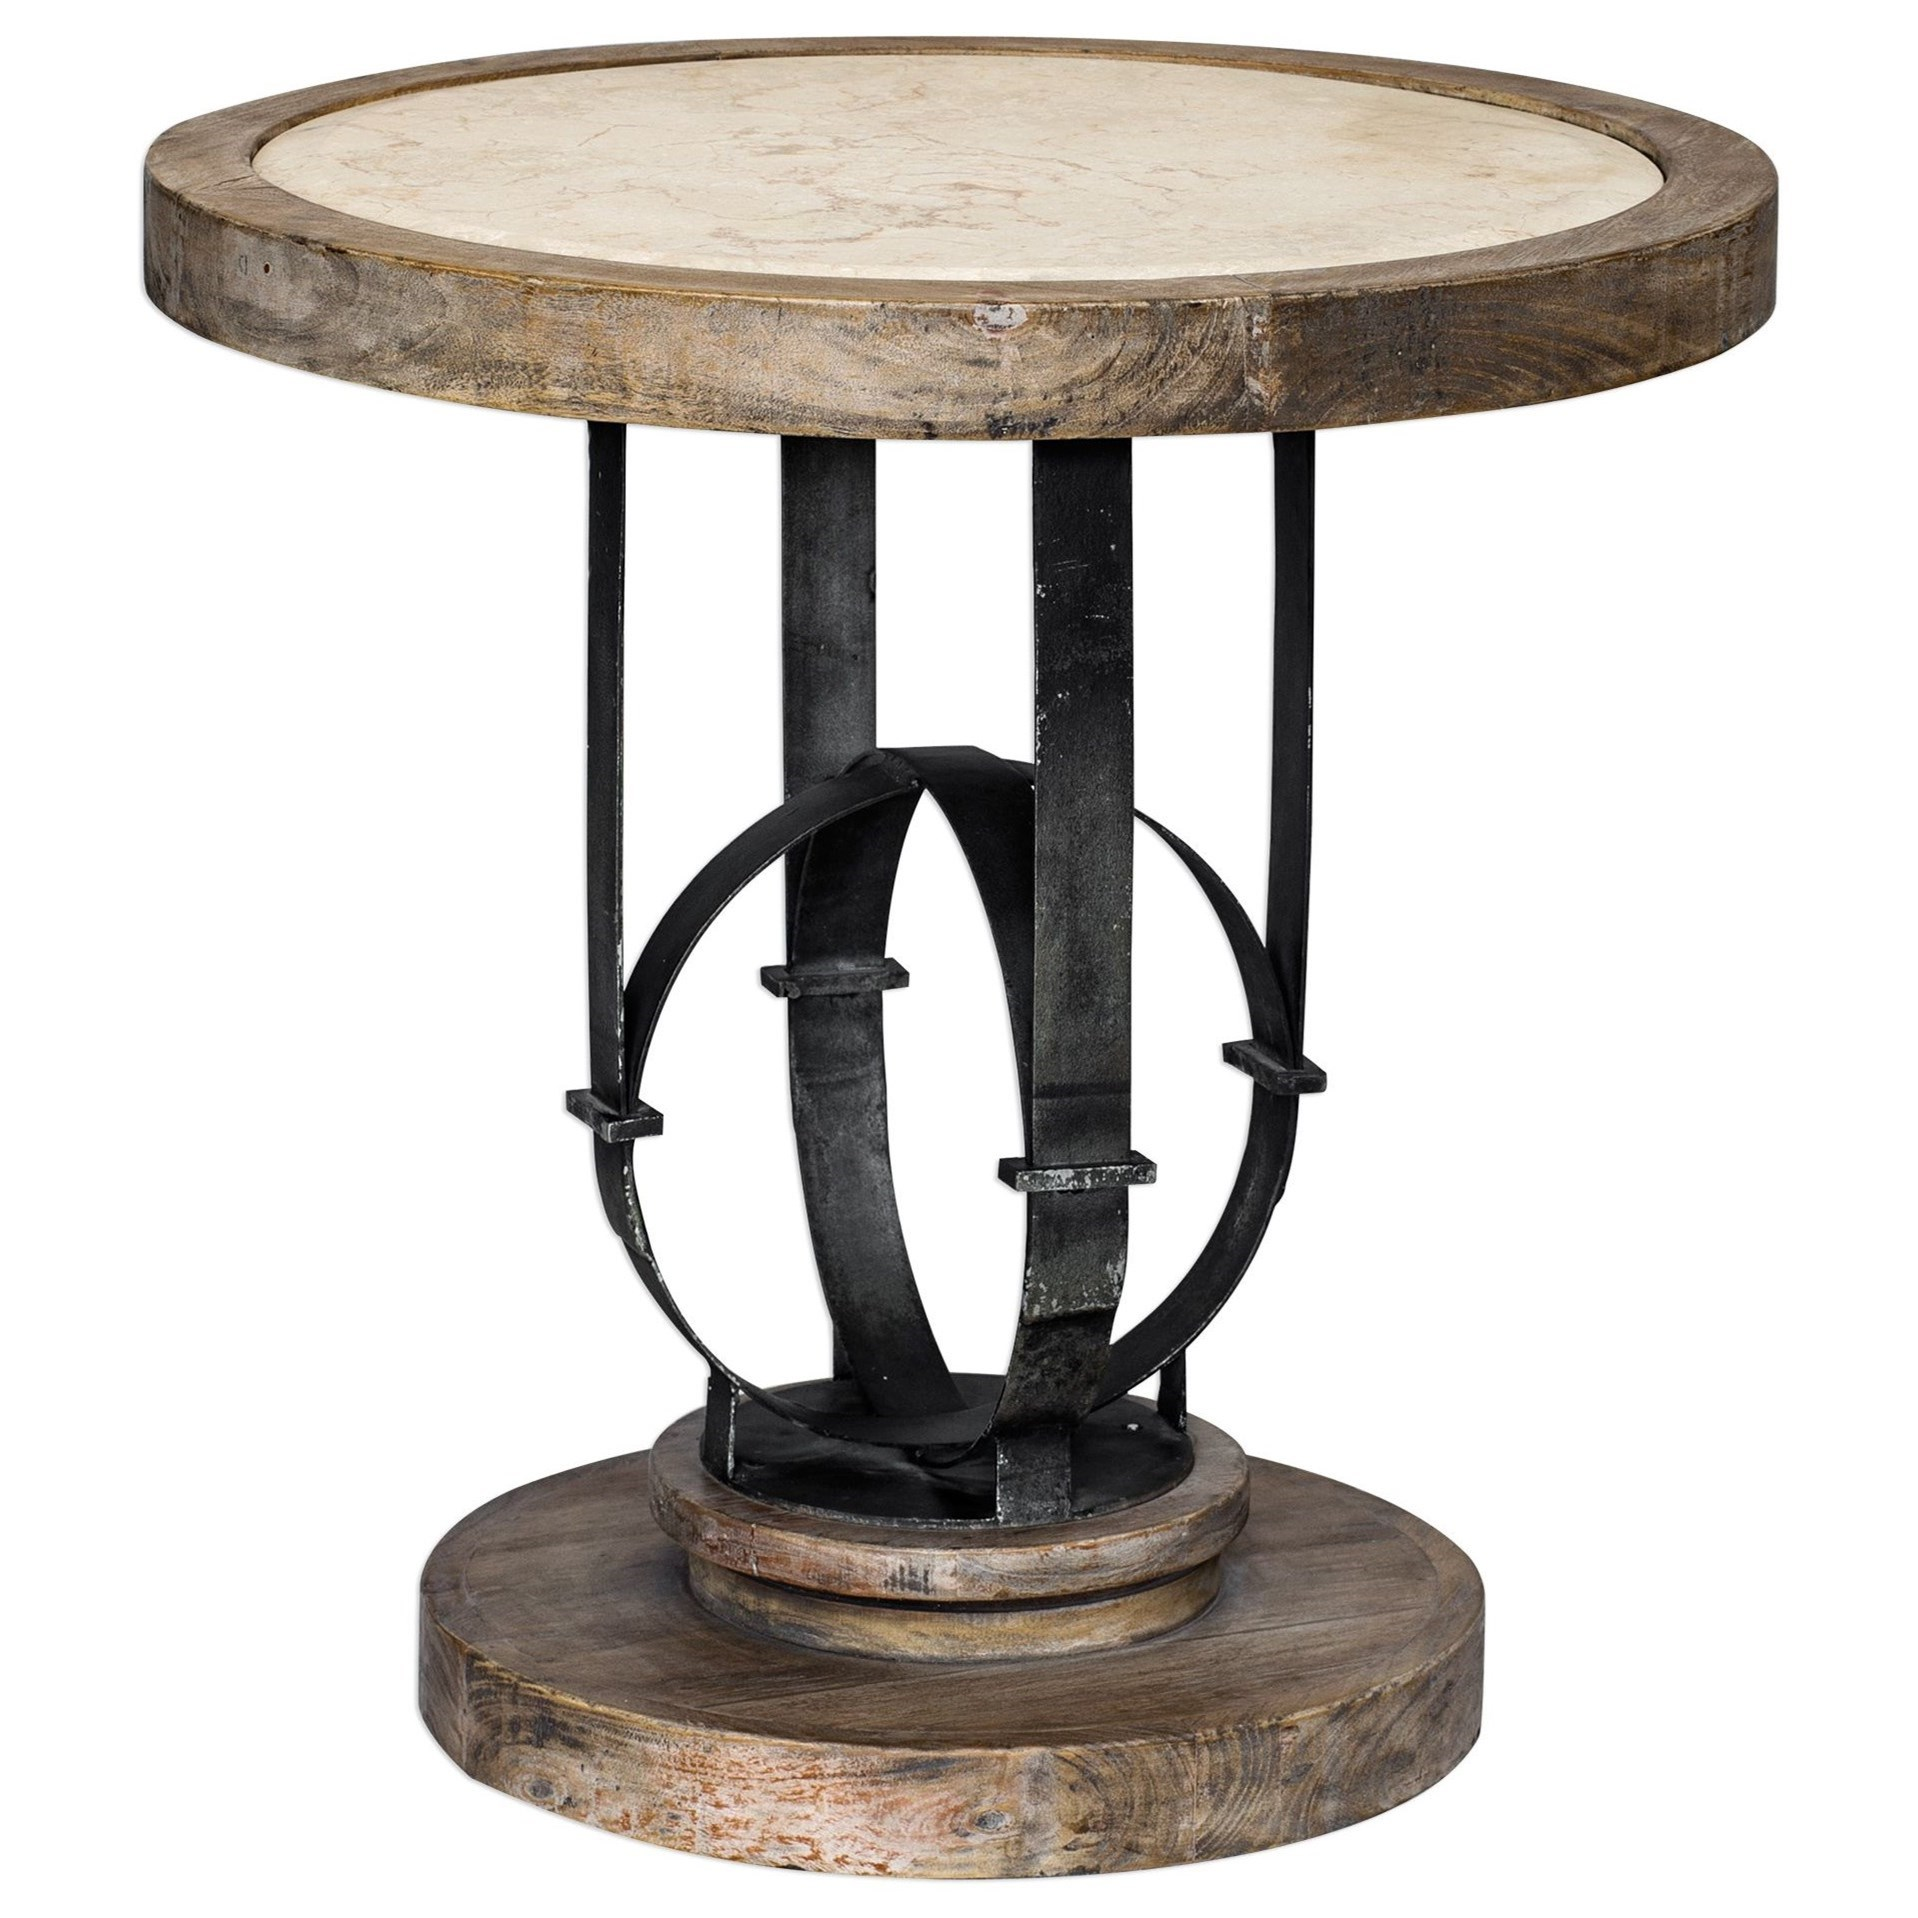 Accent Furniture - Occasional Tables Sydney Light Oak Accent Table by Uttermost at Upper Room Home Furnishings